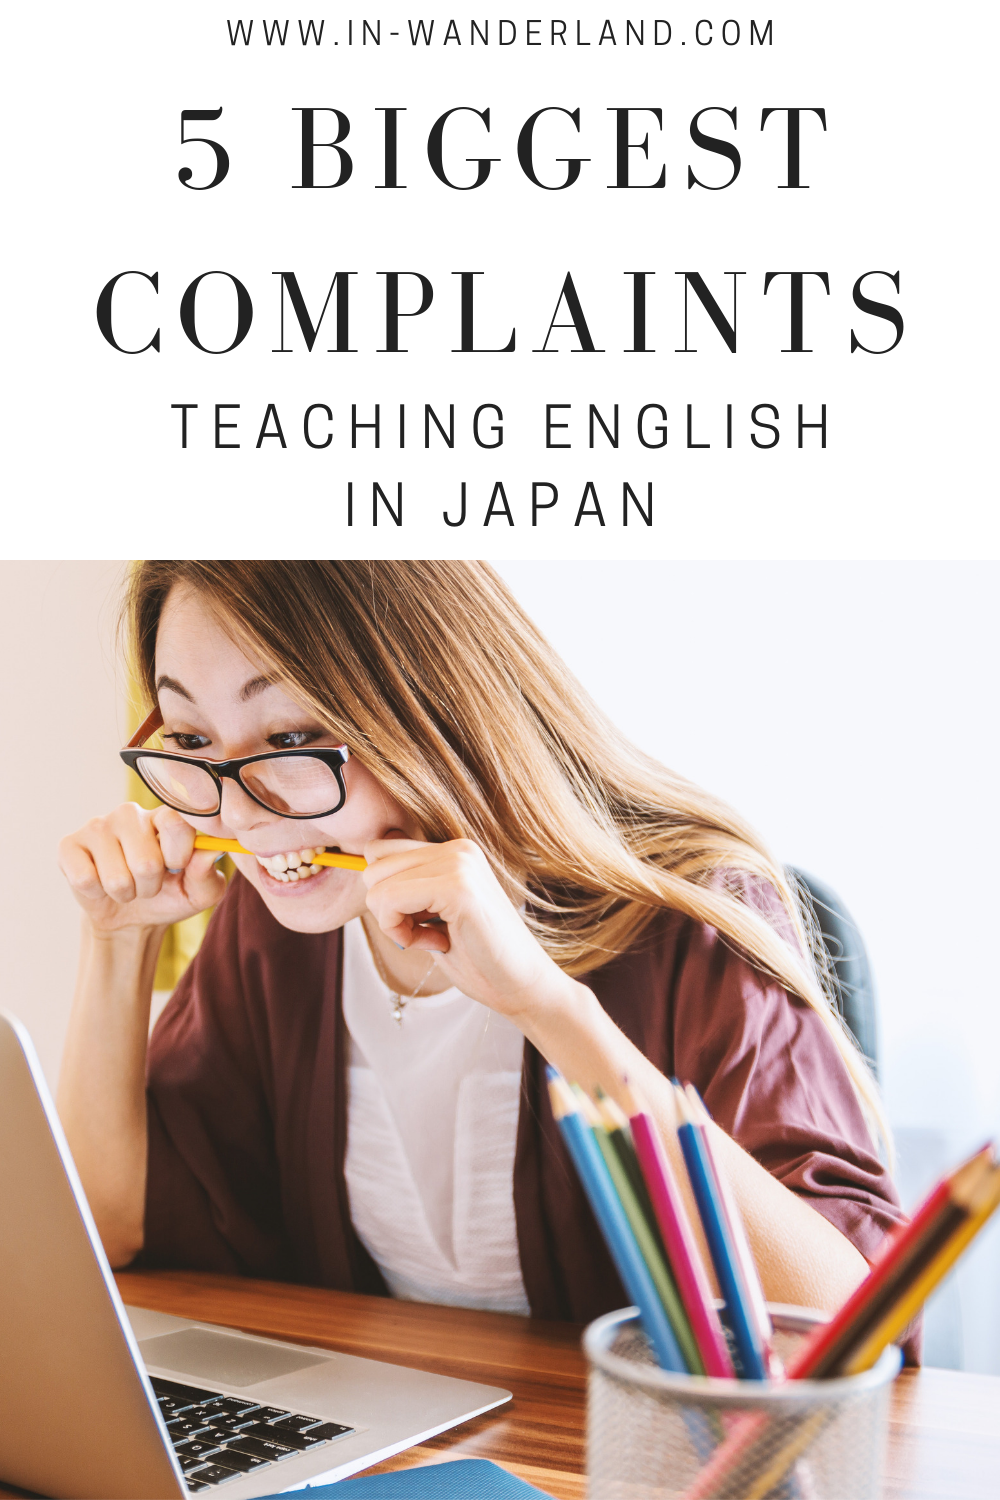 5 Biggest Complaints Working As An ALT Teaching English in Japan